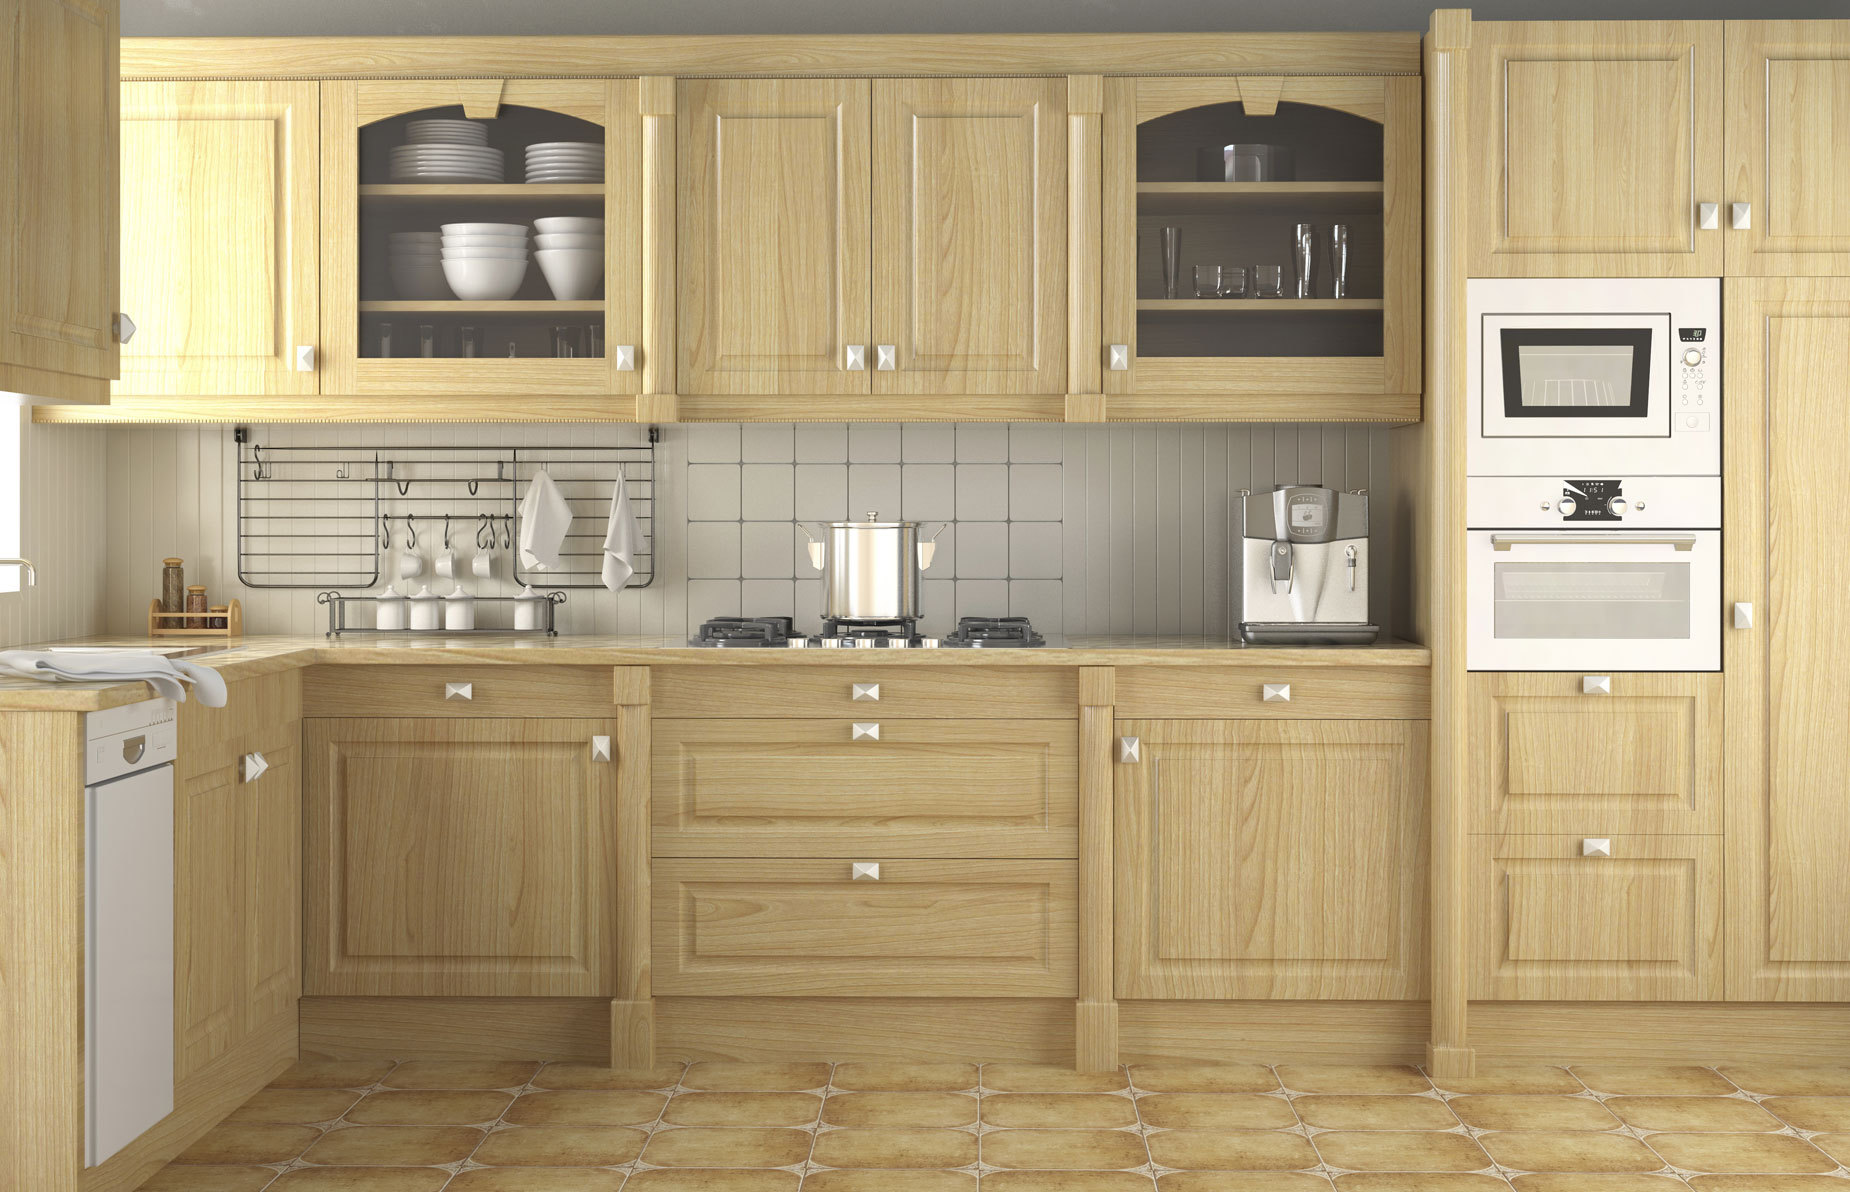 products kitchen cabinet companies One of the Best Cabinet Companies in the Laredo Zapata TX Area